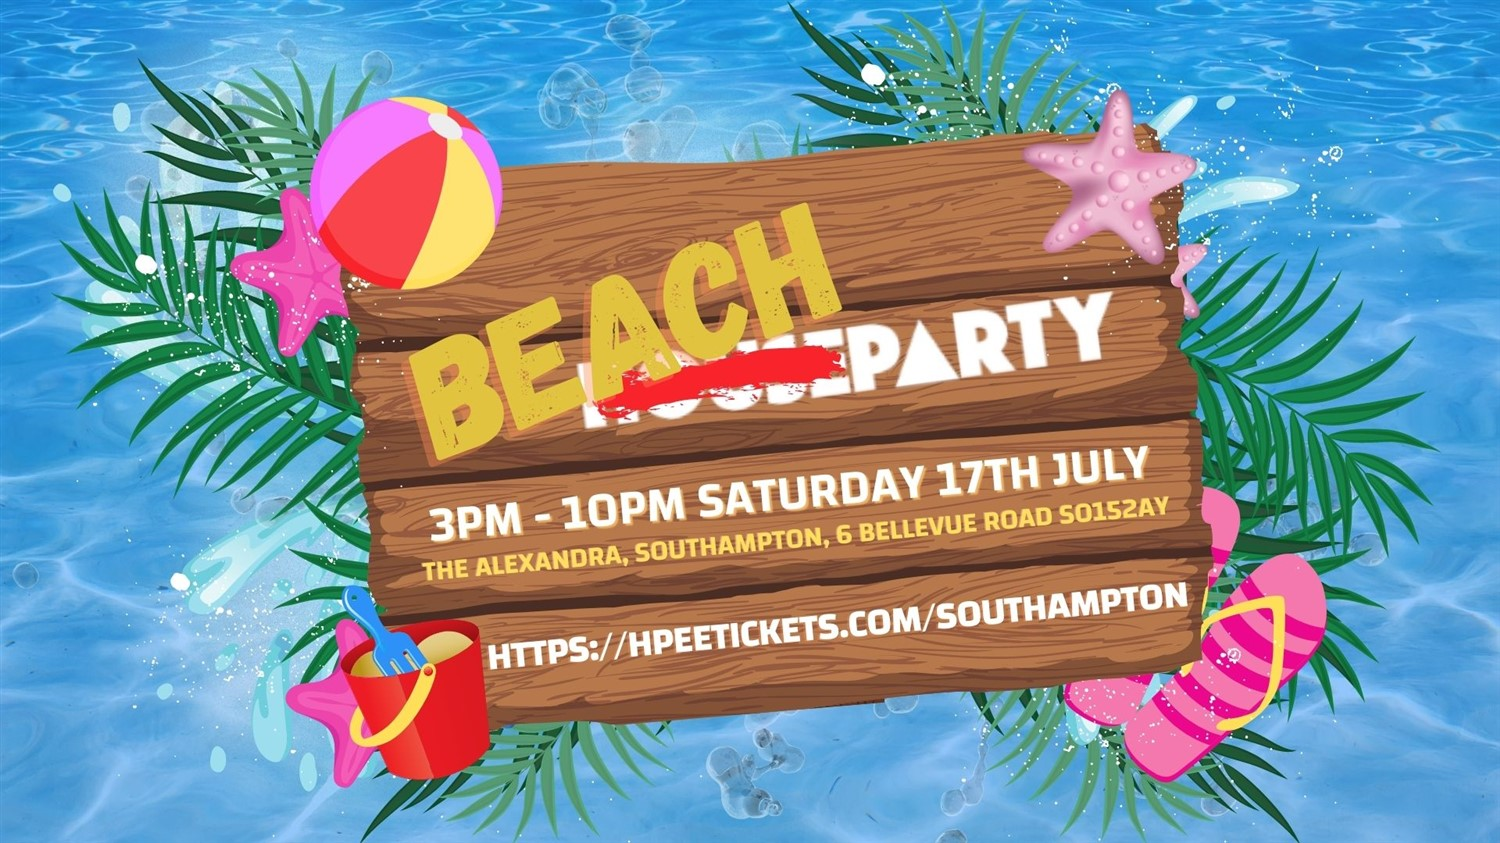 House Party Presents: The Beach Garden Party - Southampton  on Jul 17, 15:00@The Alex - Buy tickets and Get information on House Party Europe Ltd